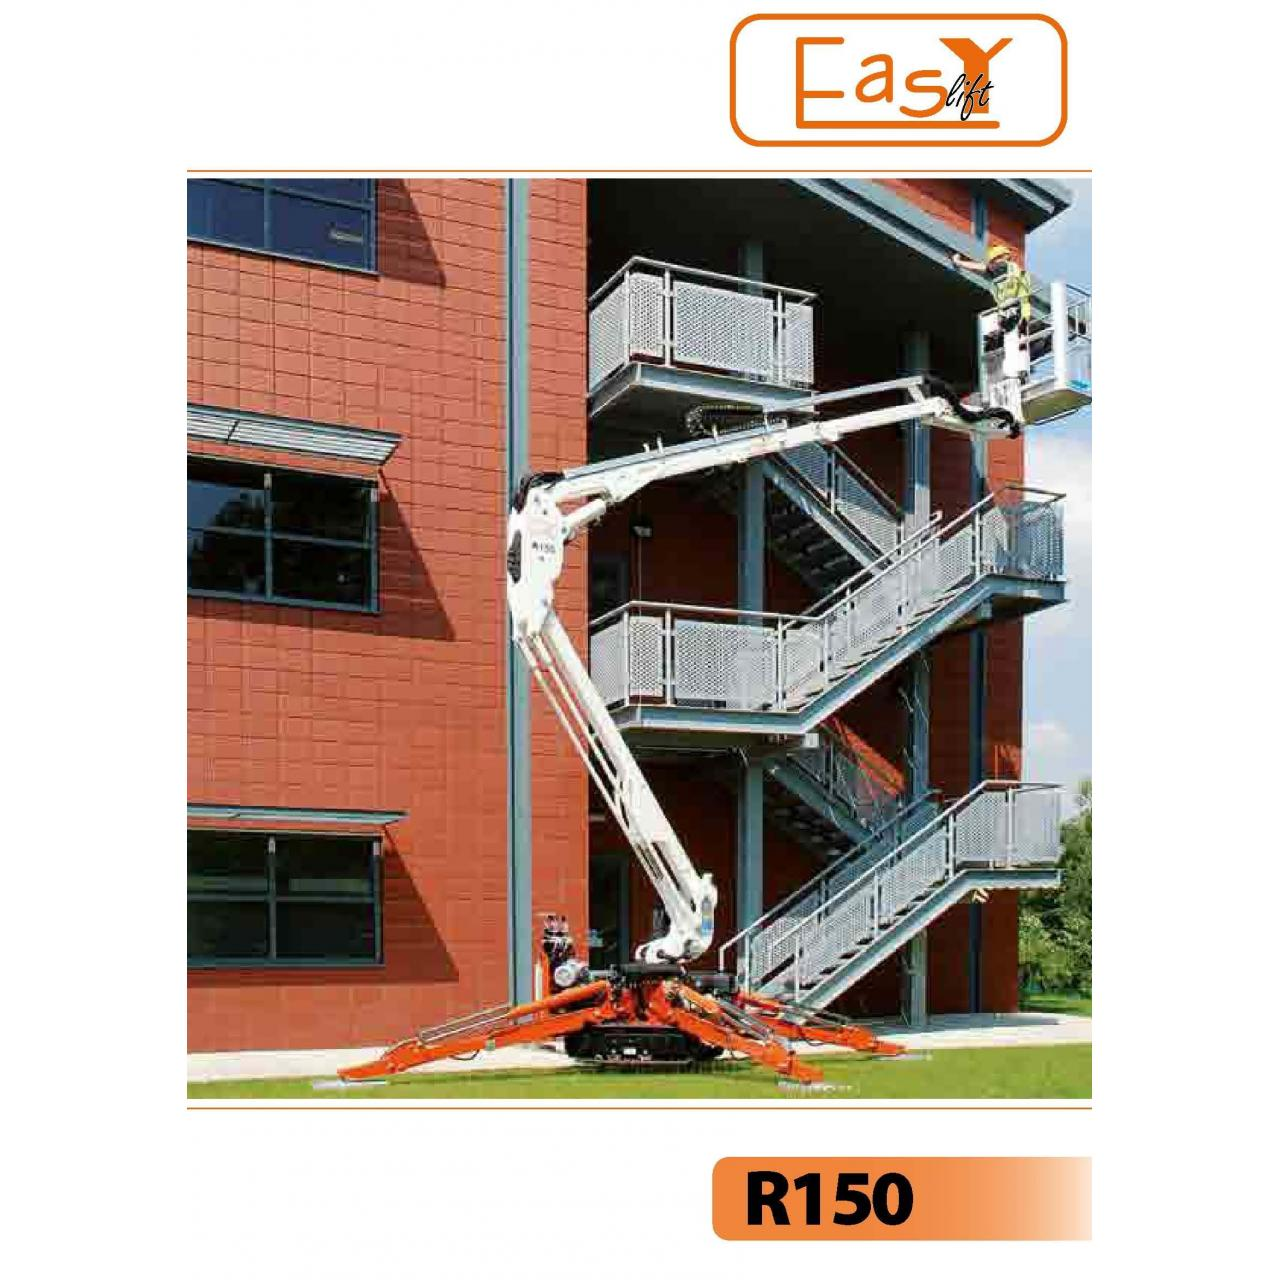 Buy cheap Easylift R150 product